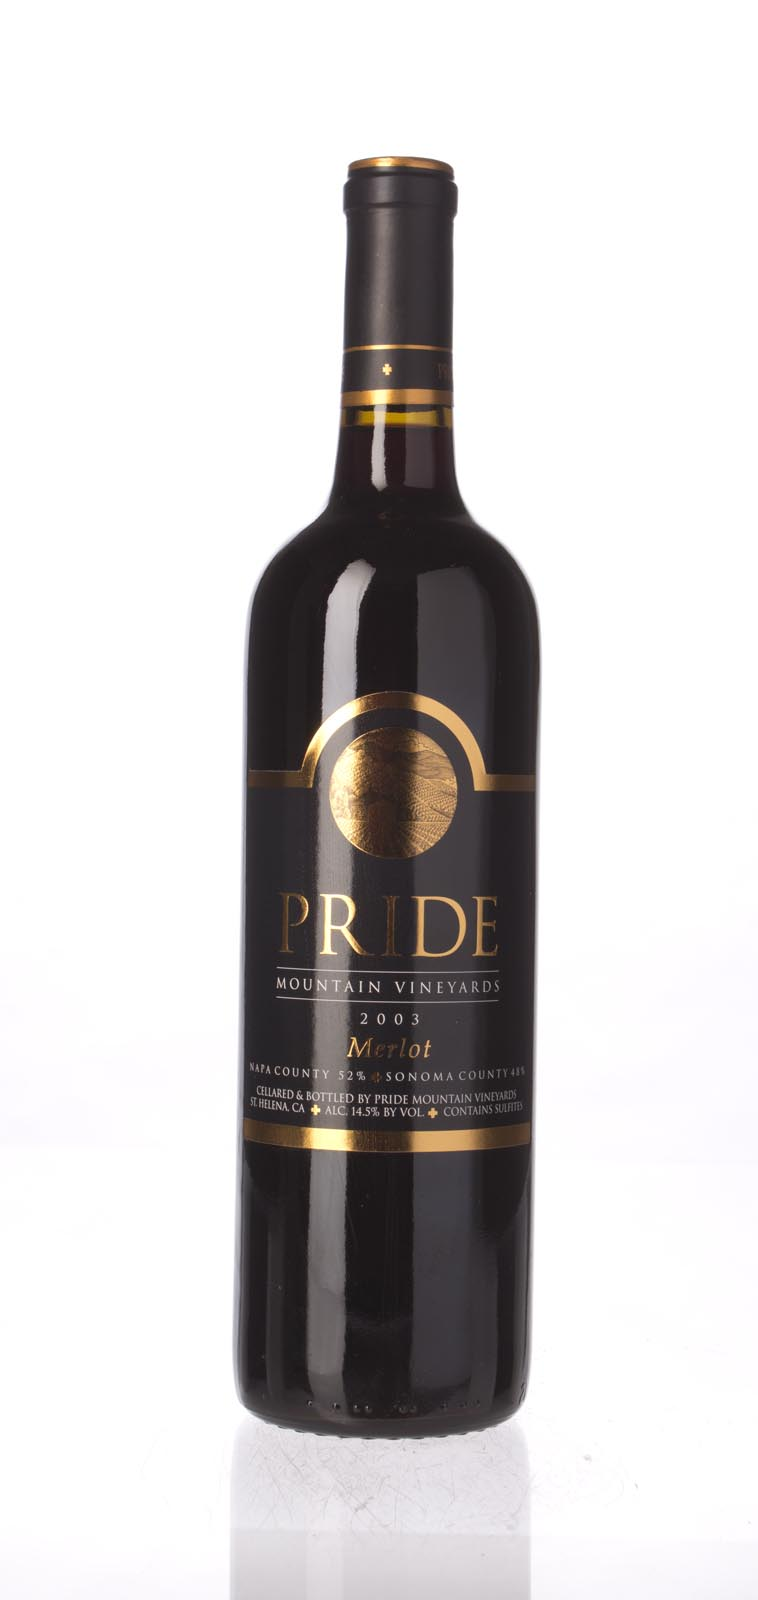 Pride Mountain Vineyards Merlot Napa/Sonoma 2003, 750mL (ST92, WS92) from The BPW - Merchants of rare and fine wines.